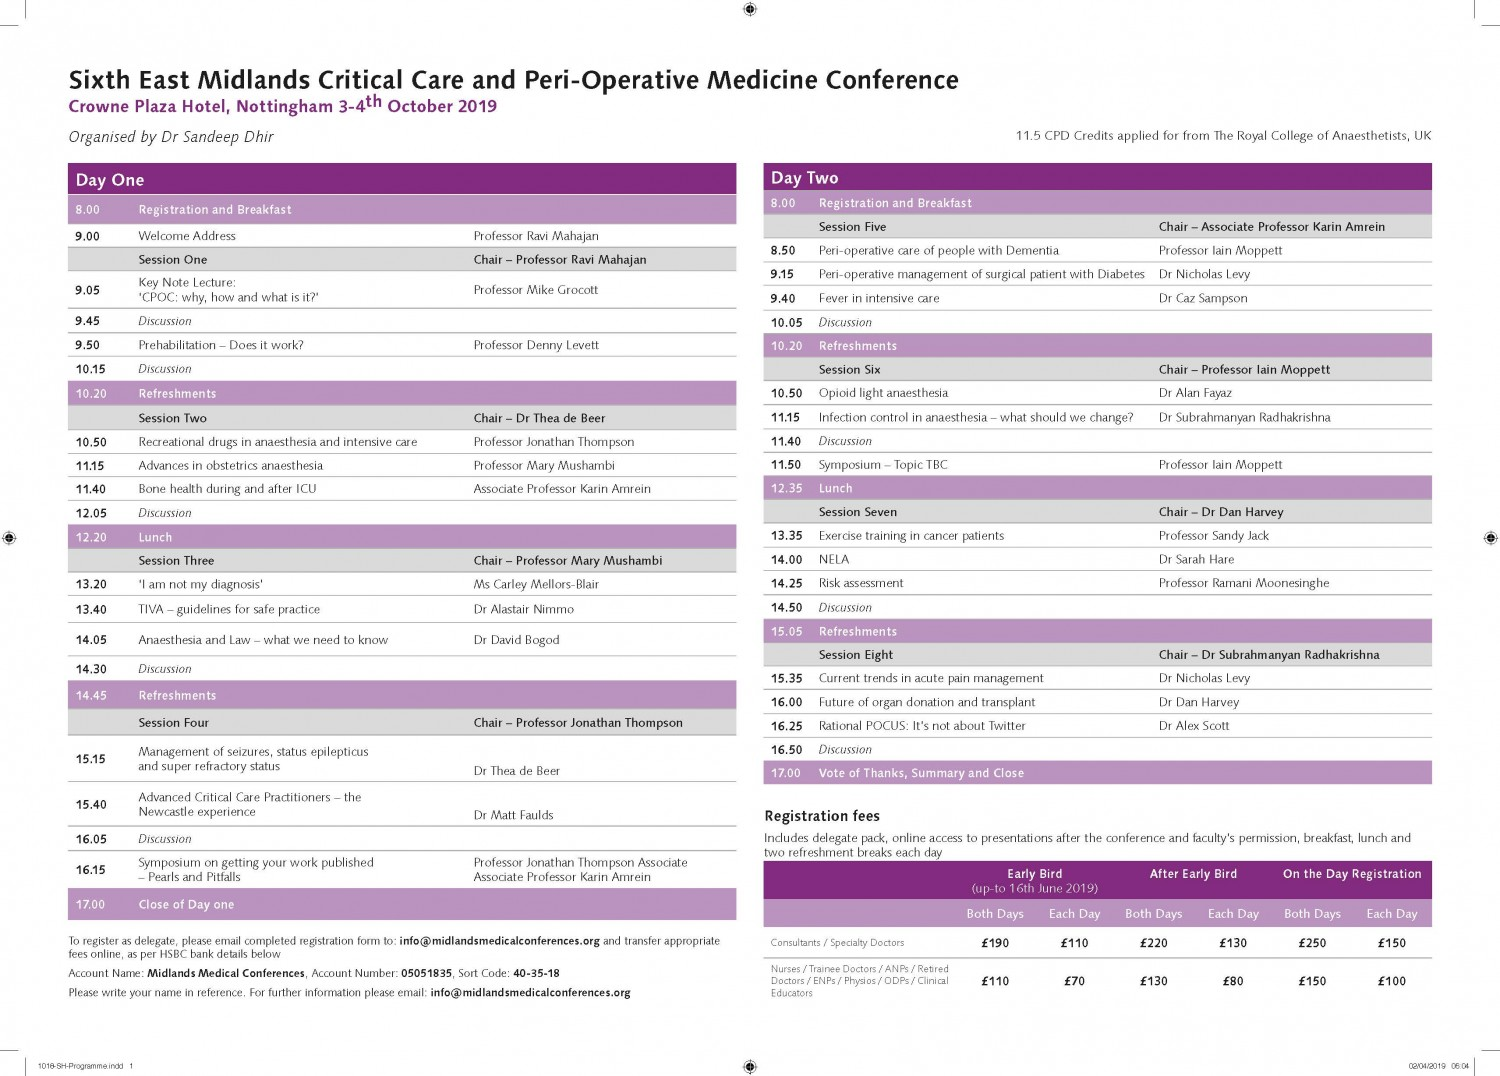 Early Bird rates ending soon for 6th EMCCare and POMedicine